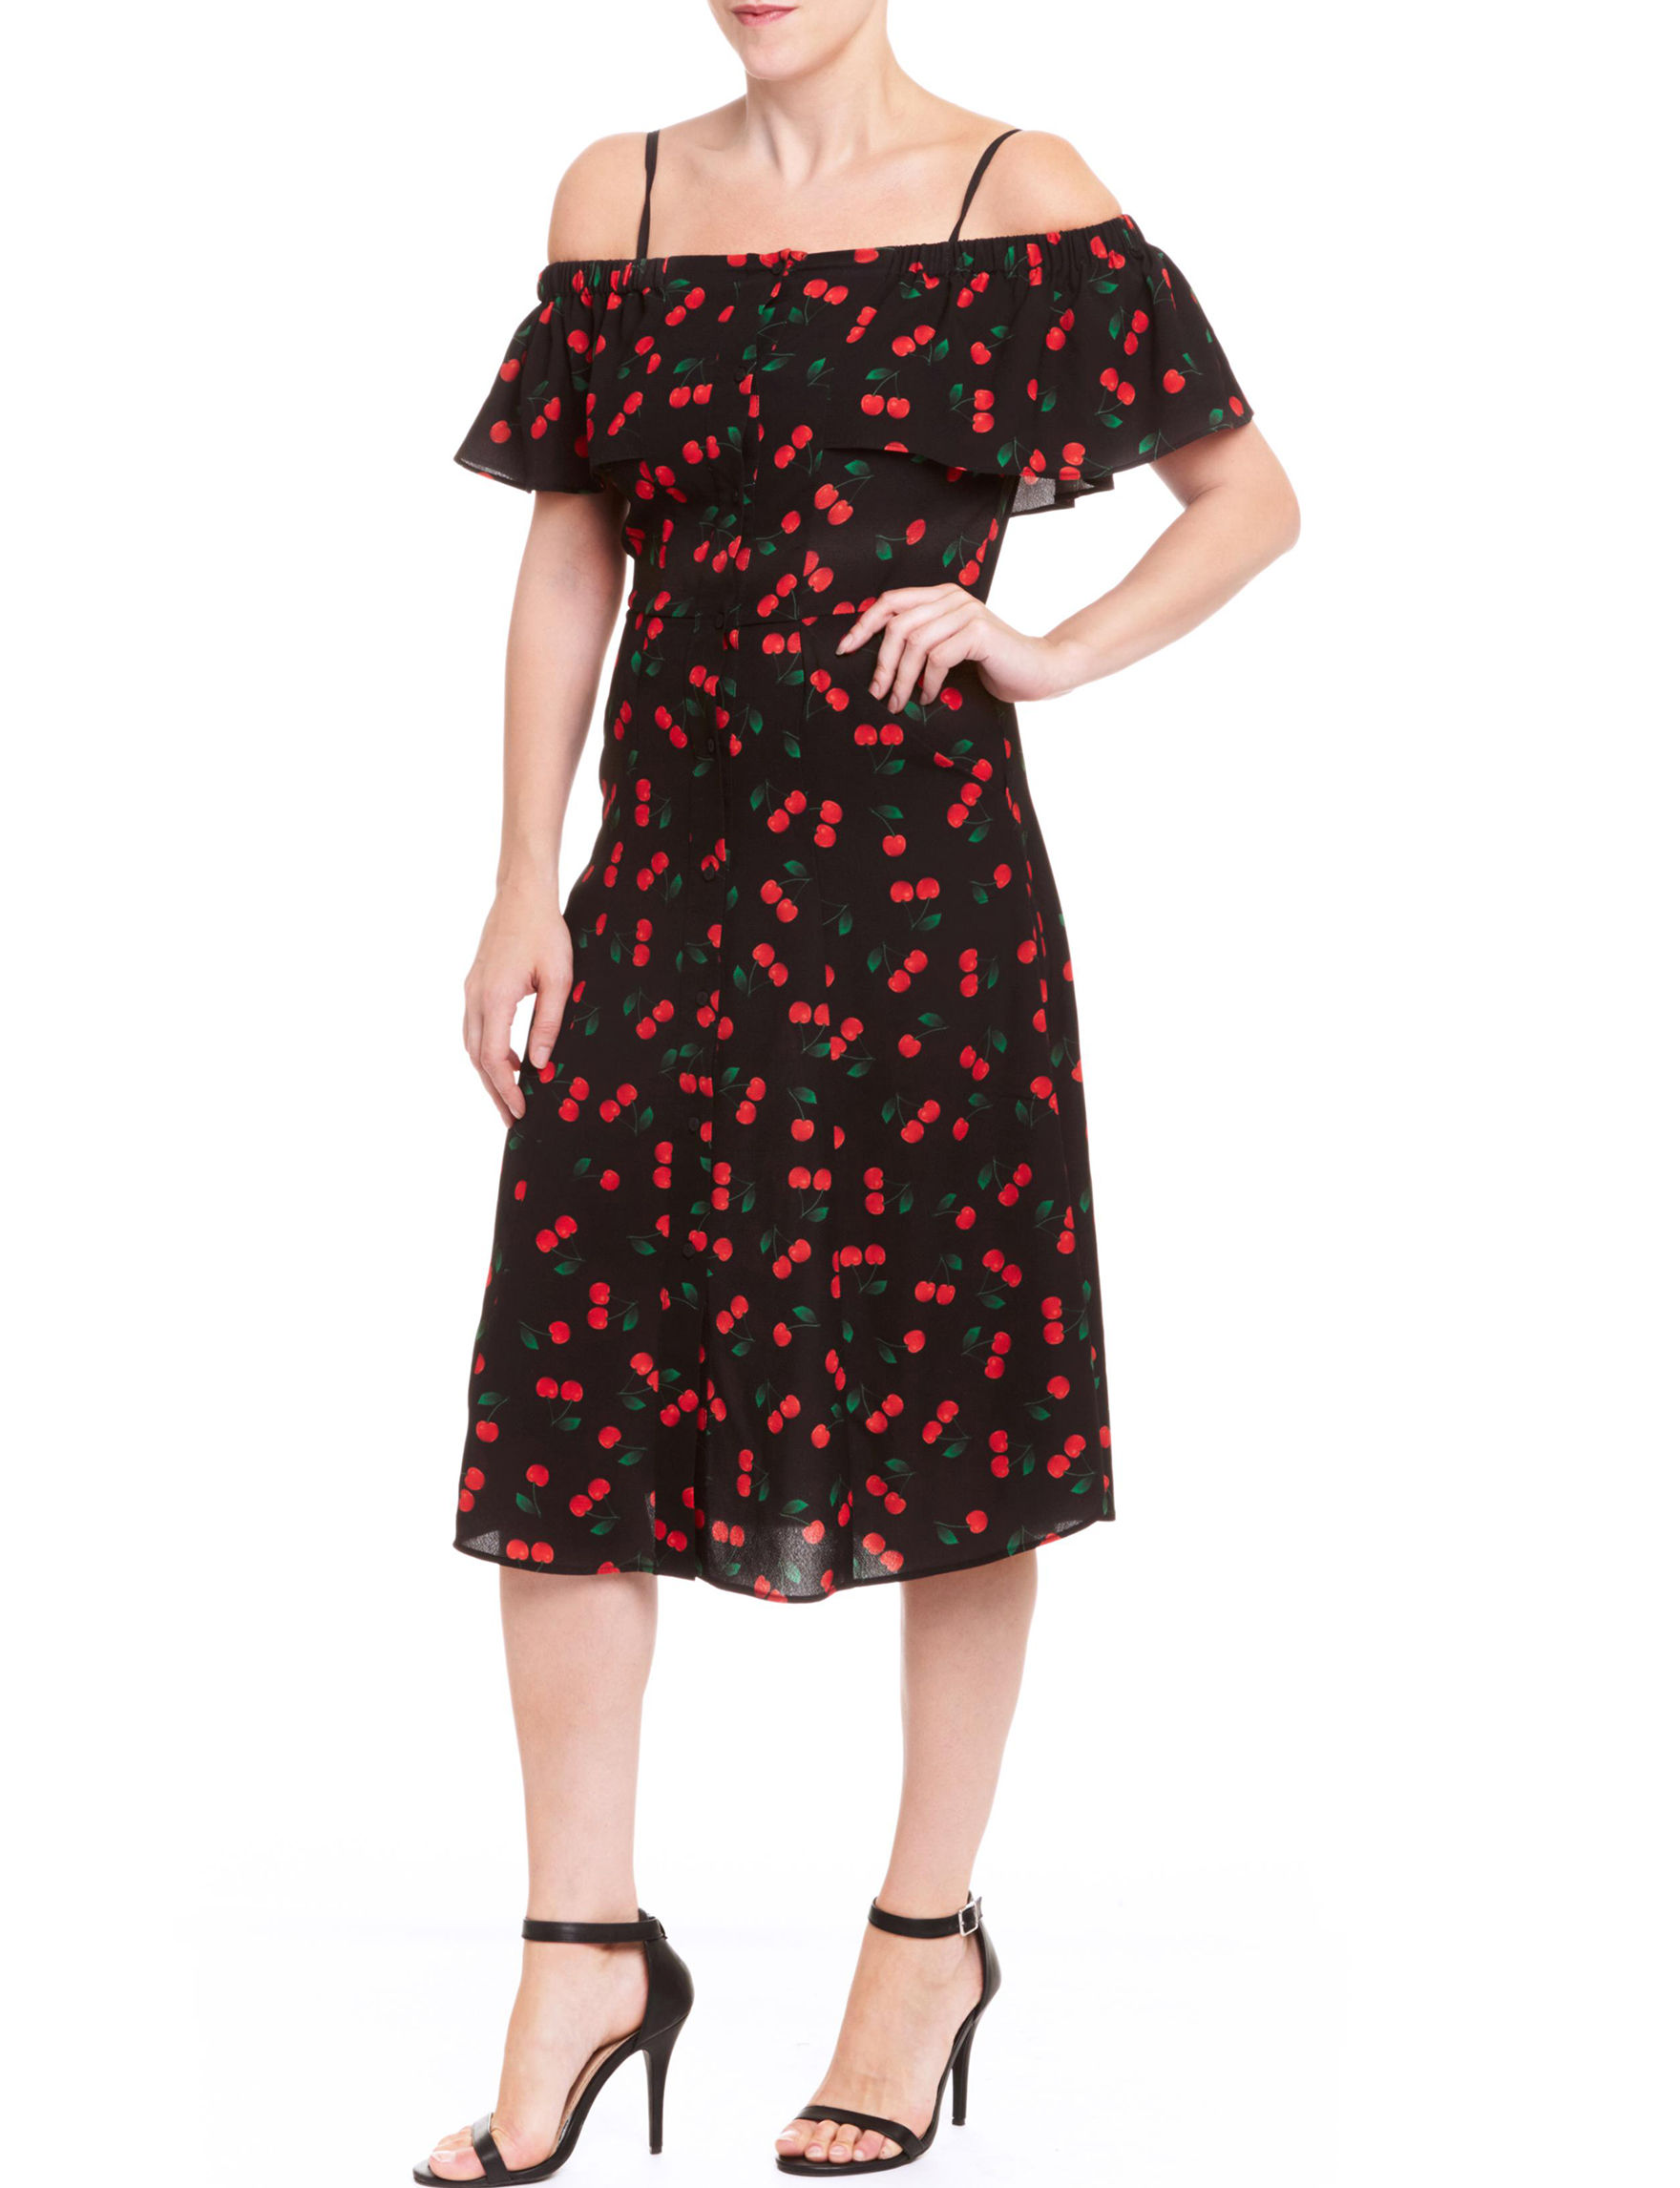 Romeo + Juliet Couture Black / Red Everyday & Casual Shift Dresses